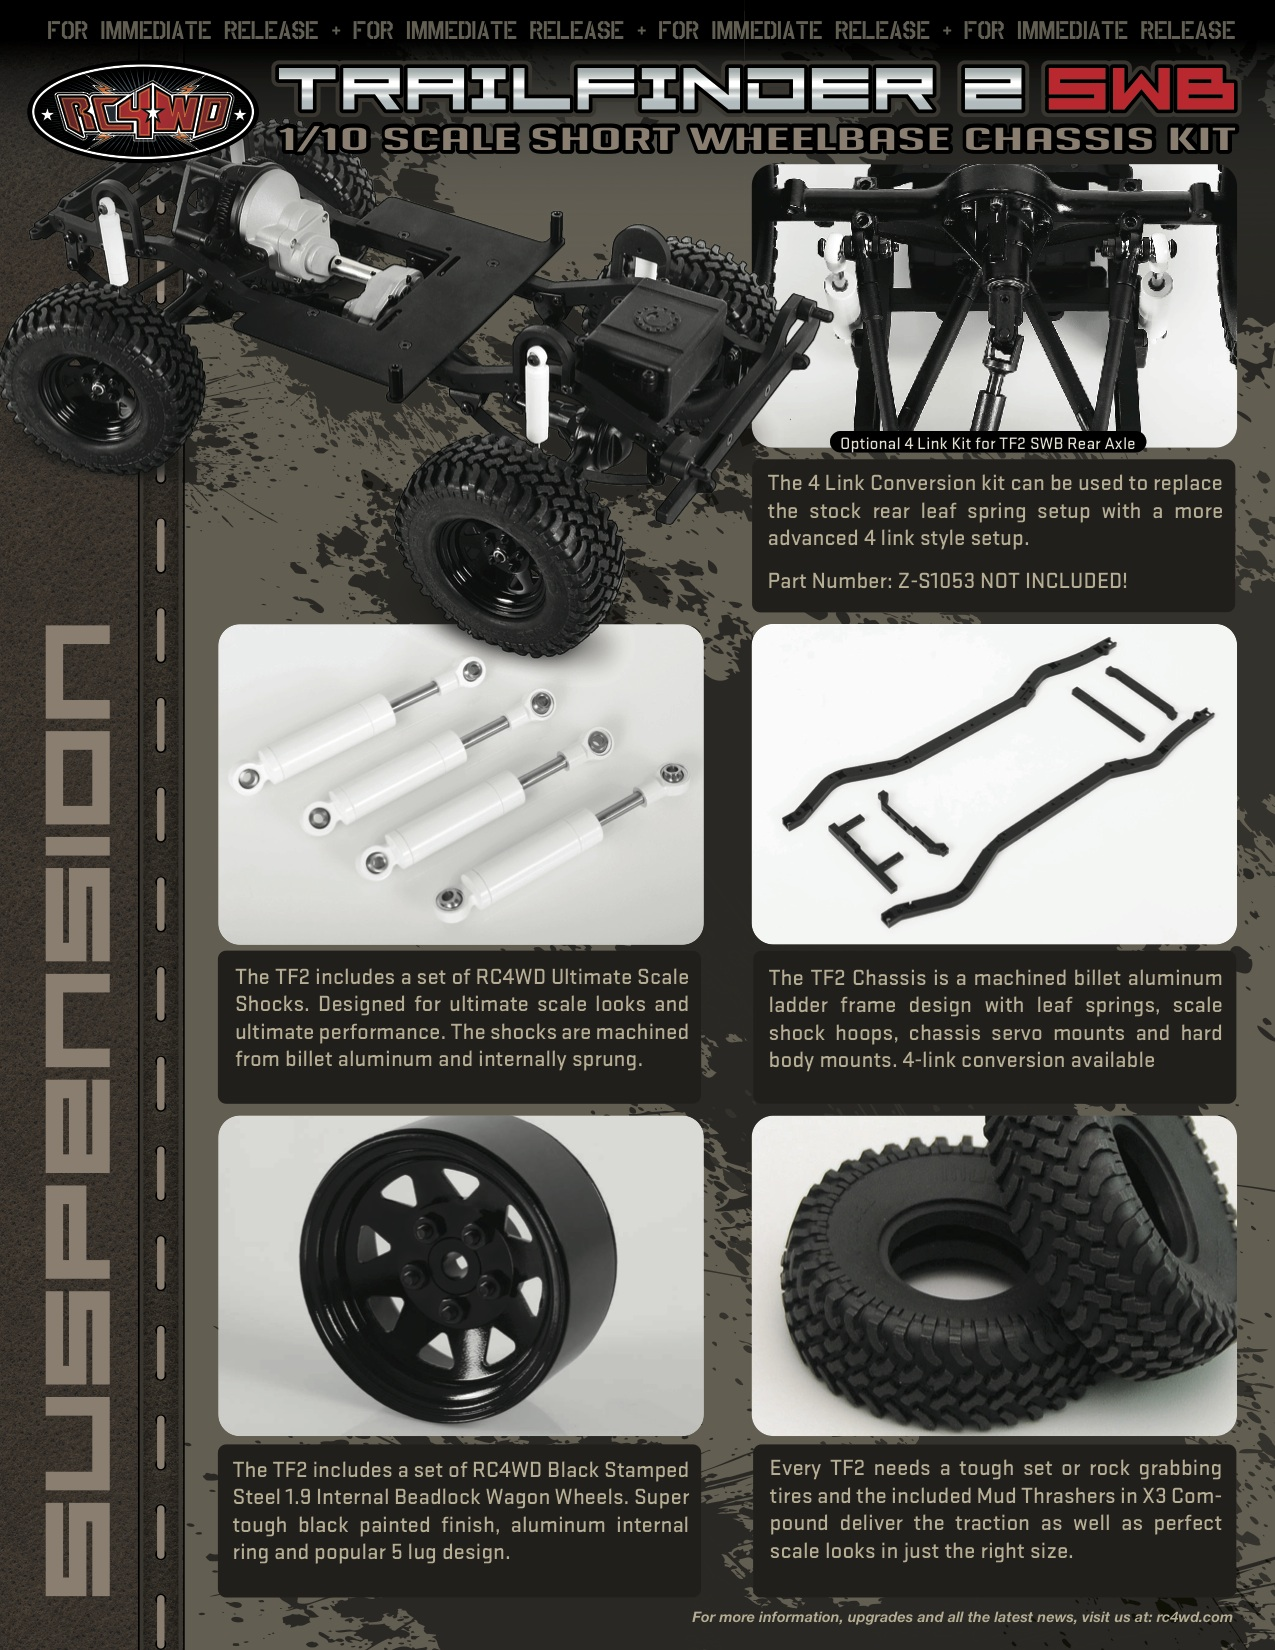 http://www.beadlok.com/product/images/ASD/Z-K0045-9Suspension-print.jpg